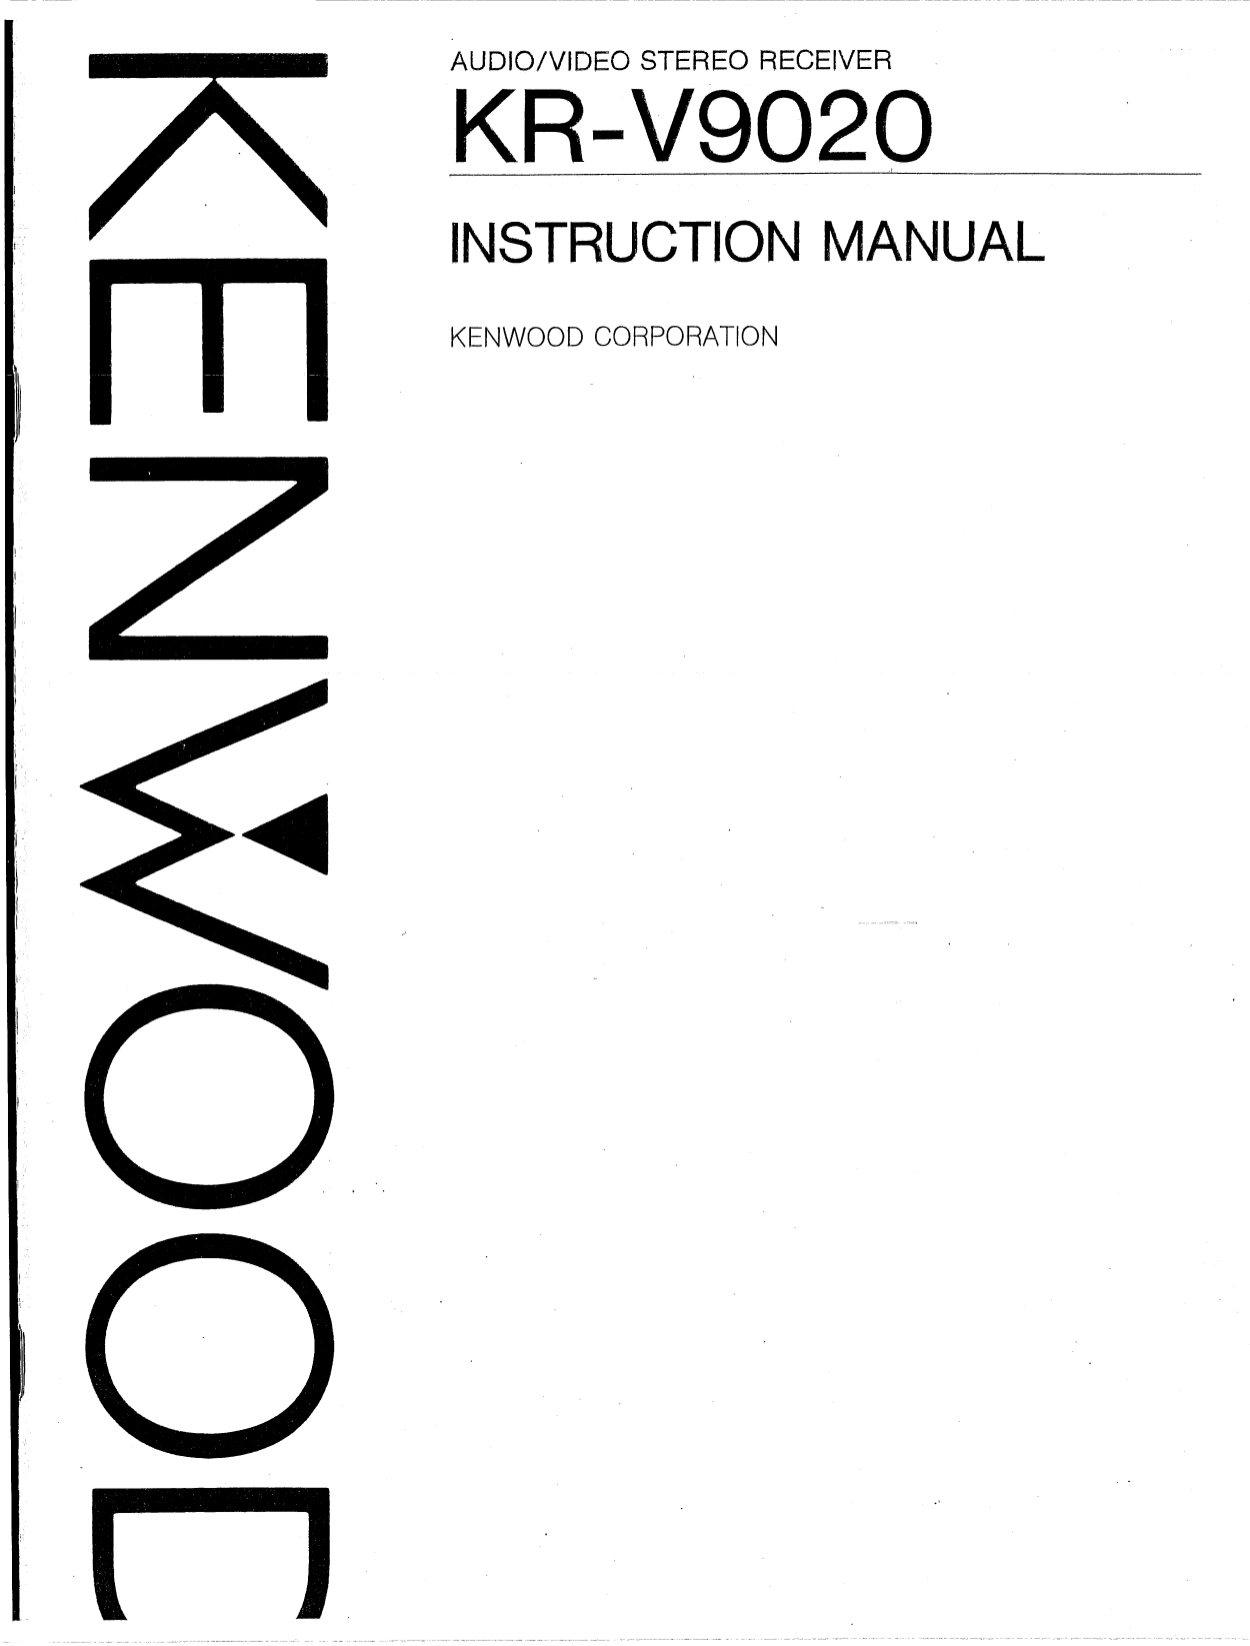 Download free pdf for Kenwood CT-201 Tape Deck manual